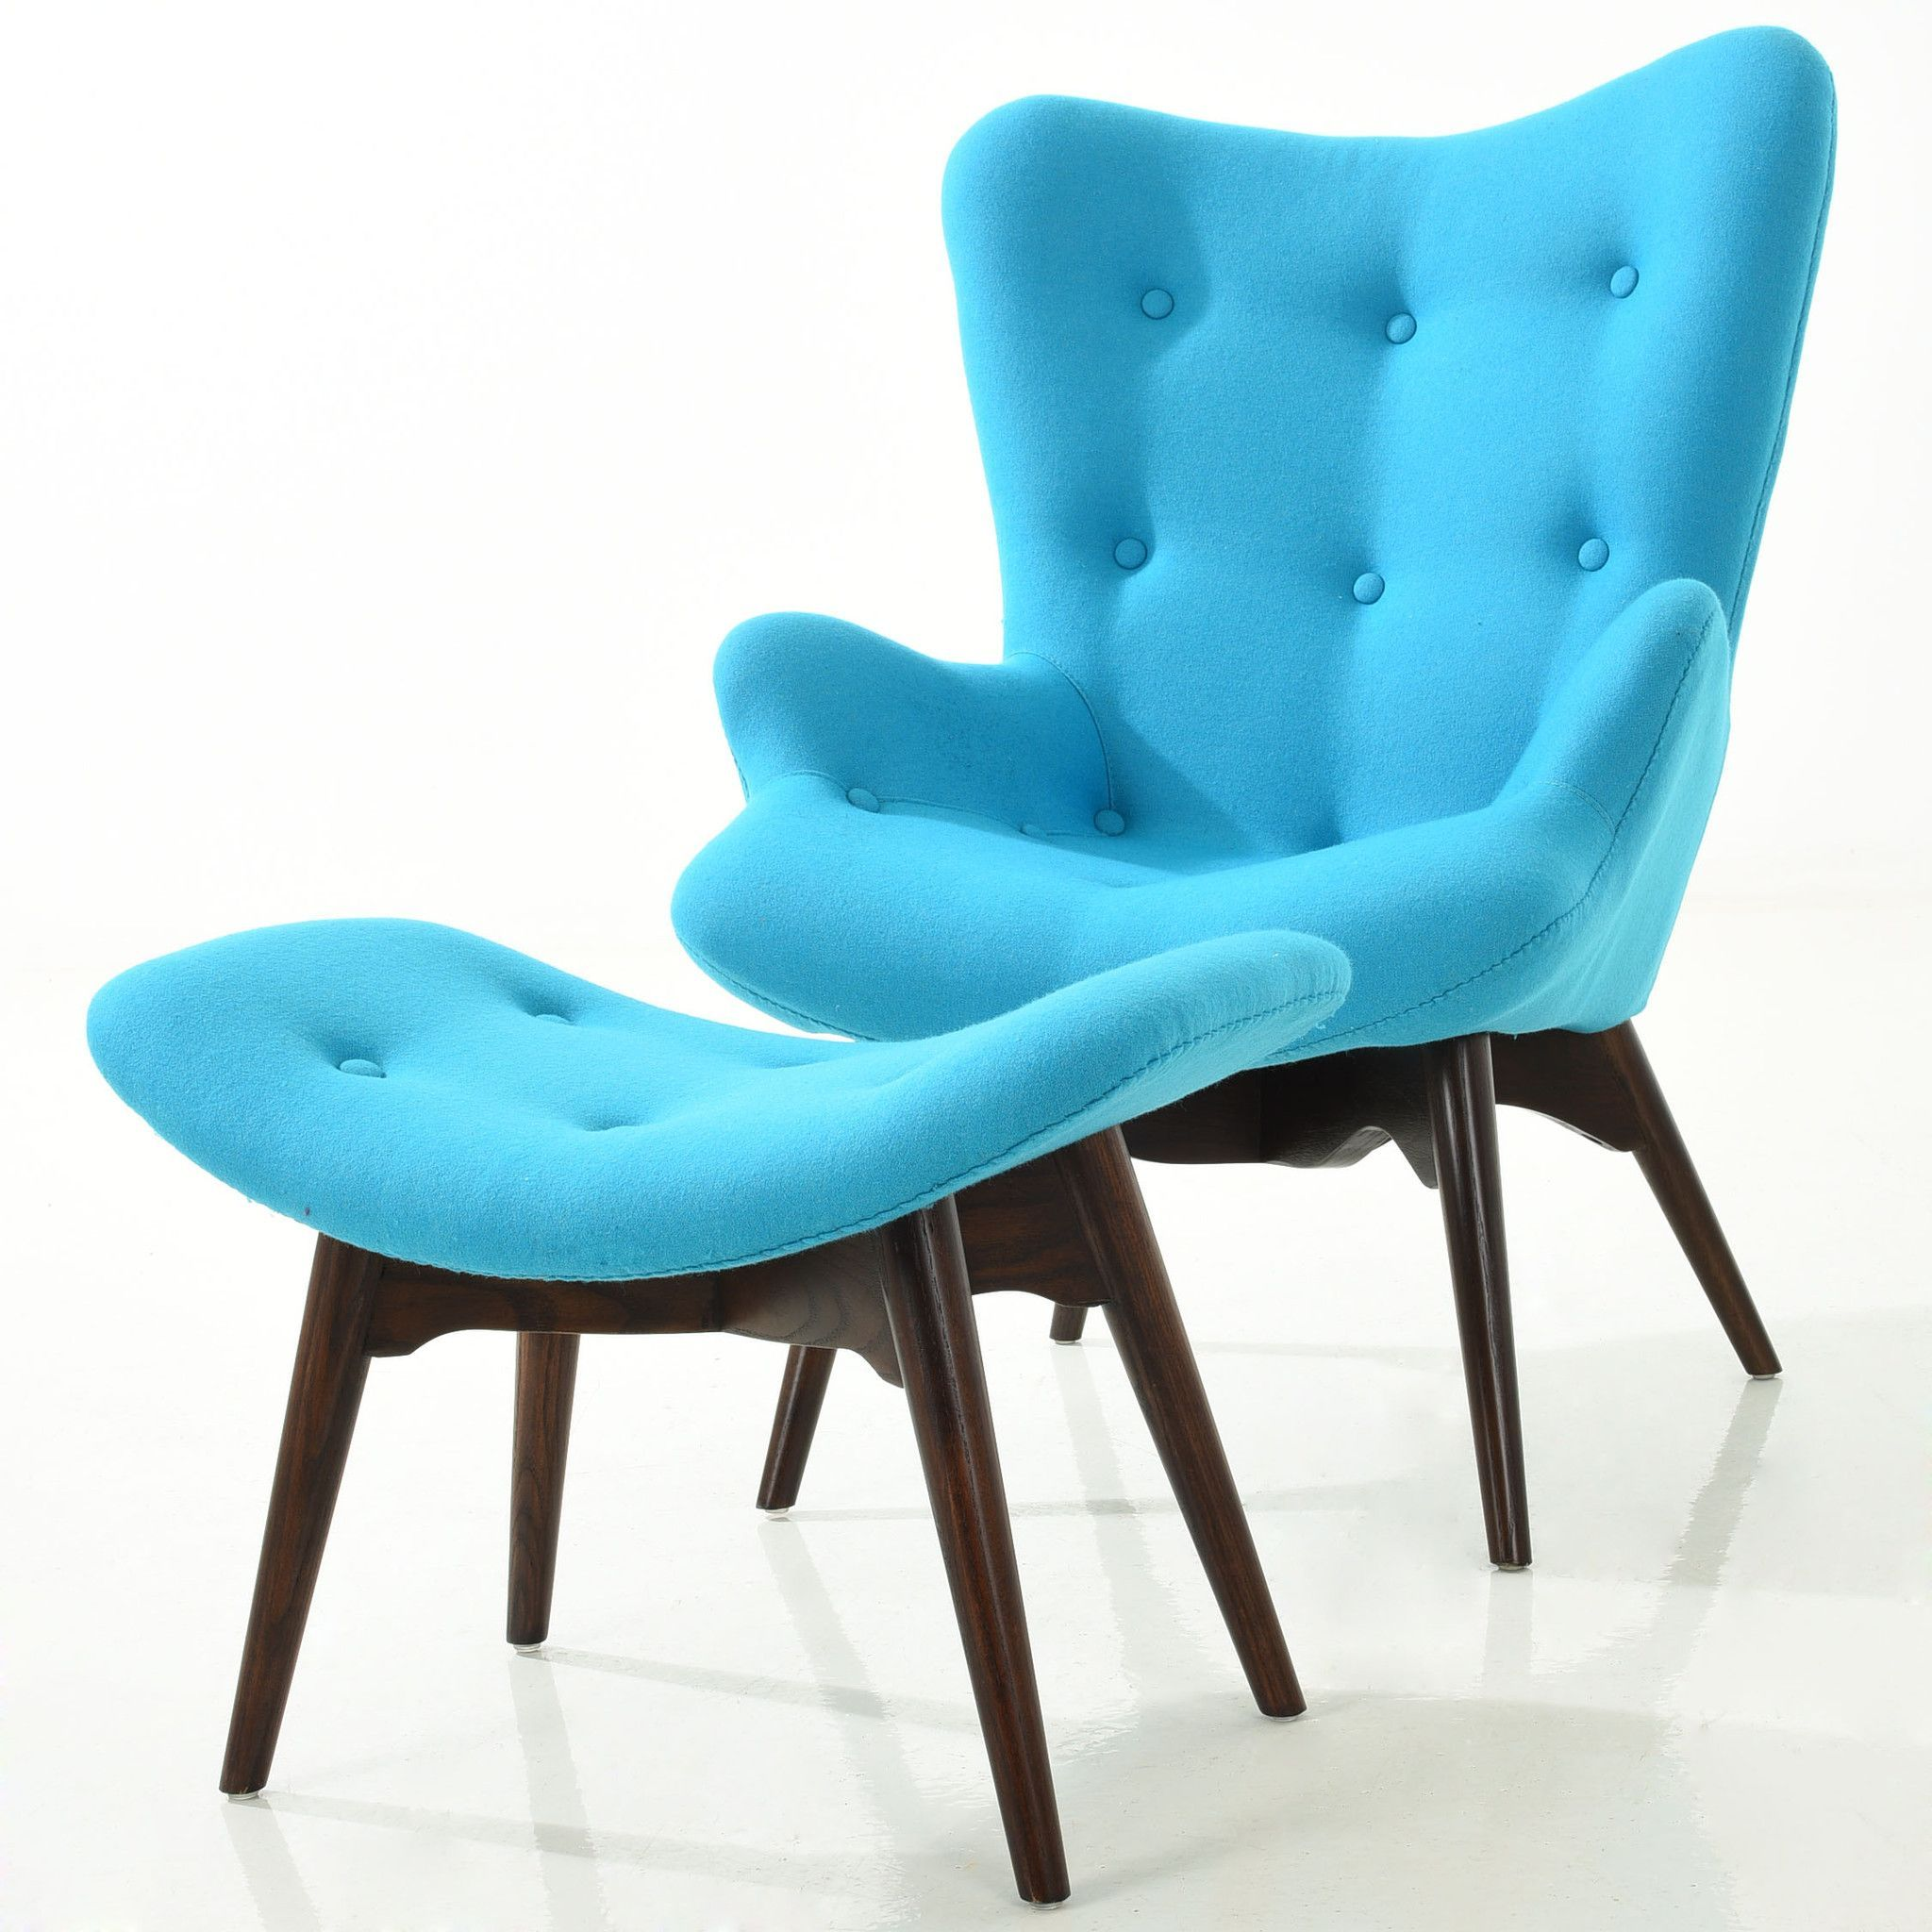 Pleasant Edgemod Auzzie Lounge Chair And Ottoman Products Chair Ibusinesslaw Wood Chair Design Ideas Ibusinesslaworg